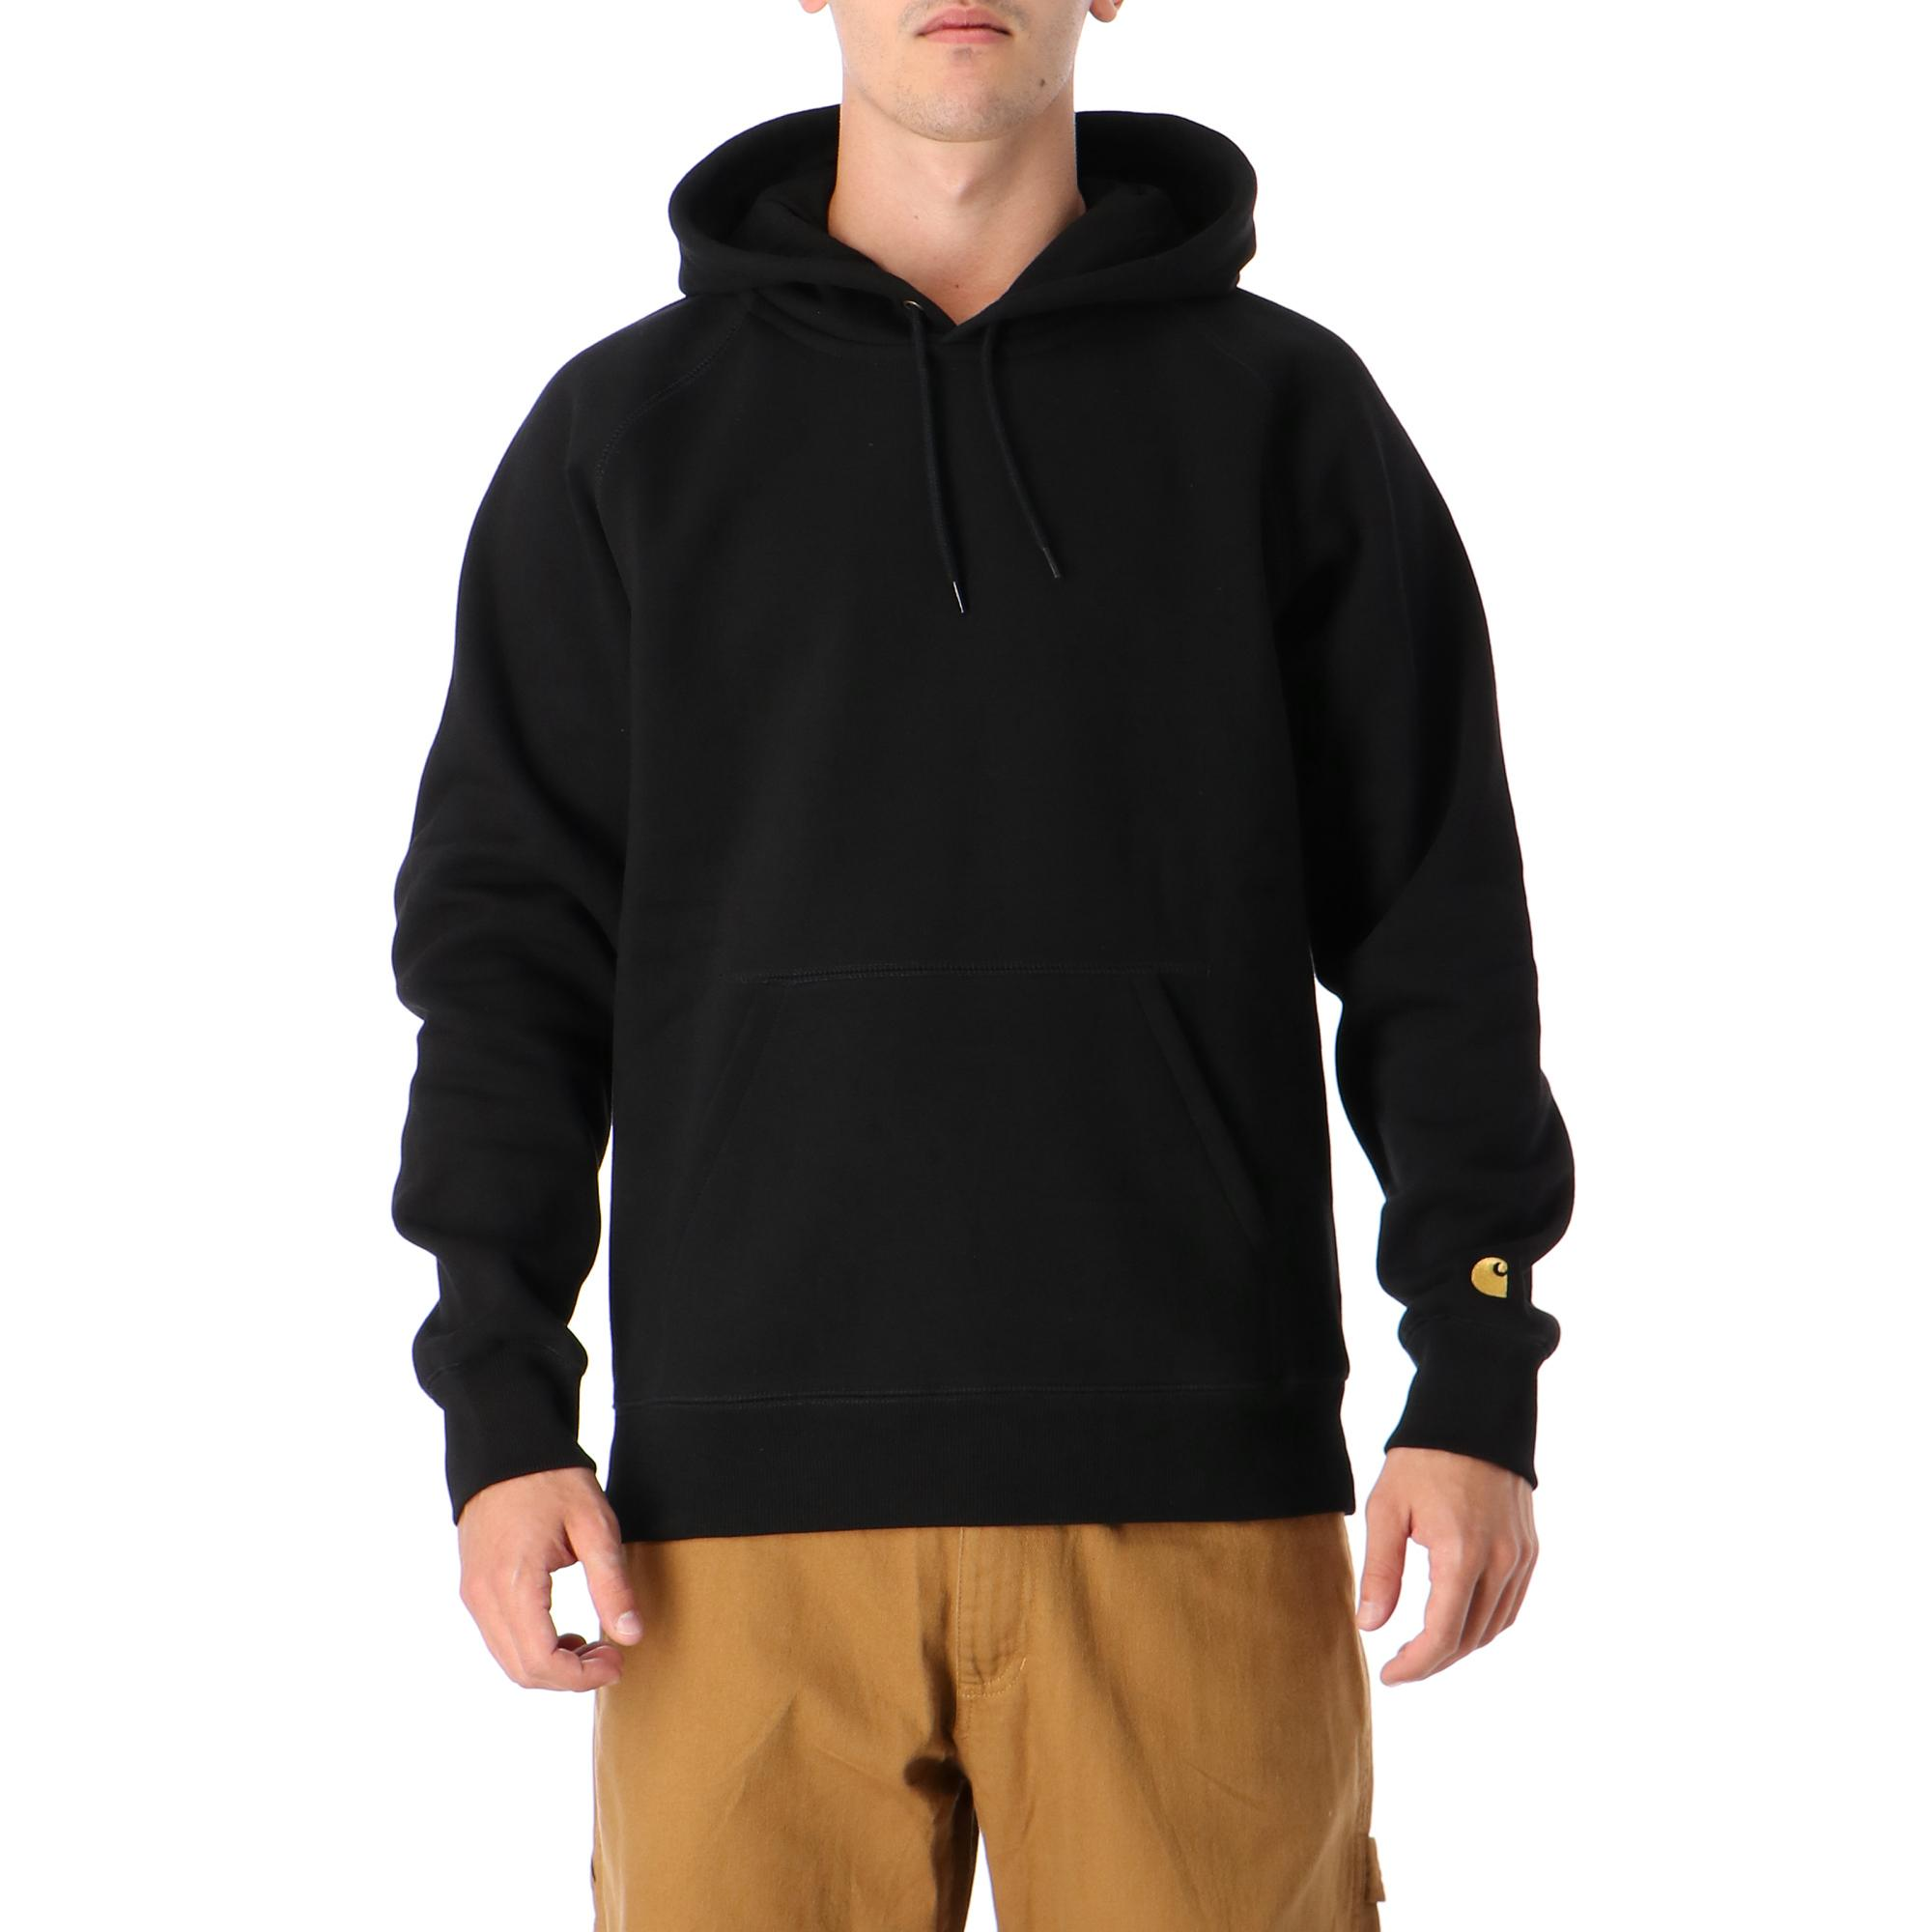 Carhartt Hooded Chase Sweatshirt<br/> Black gold